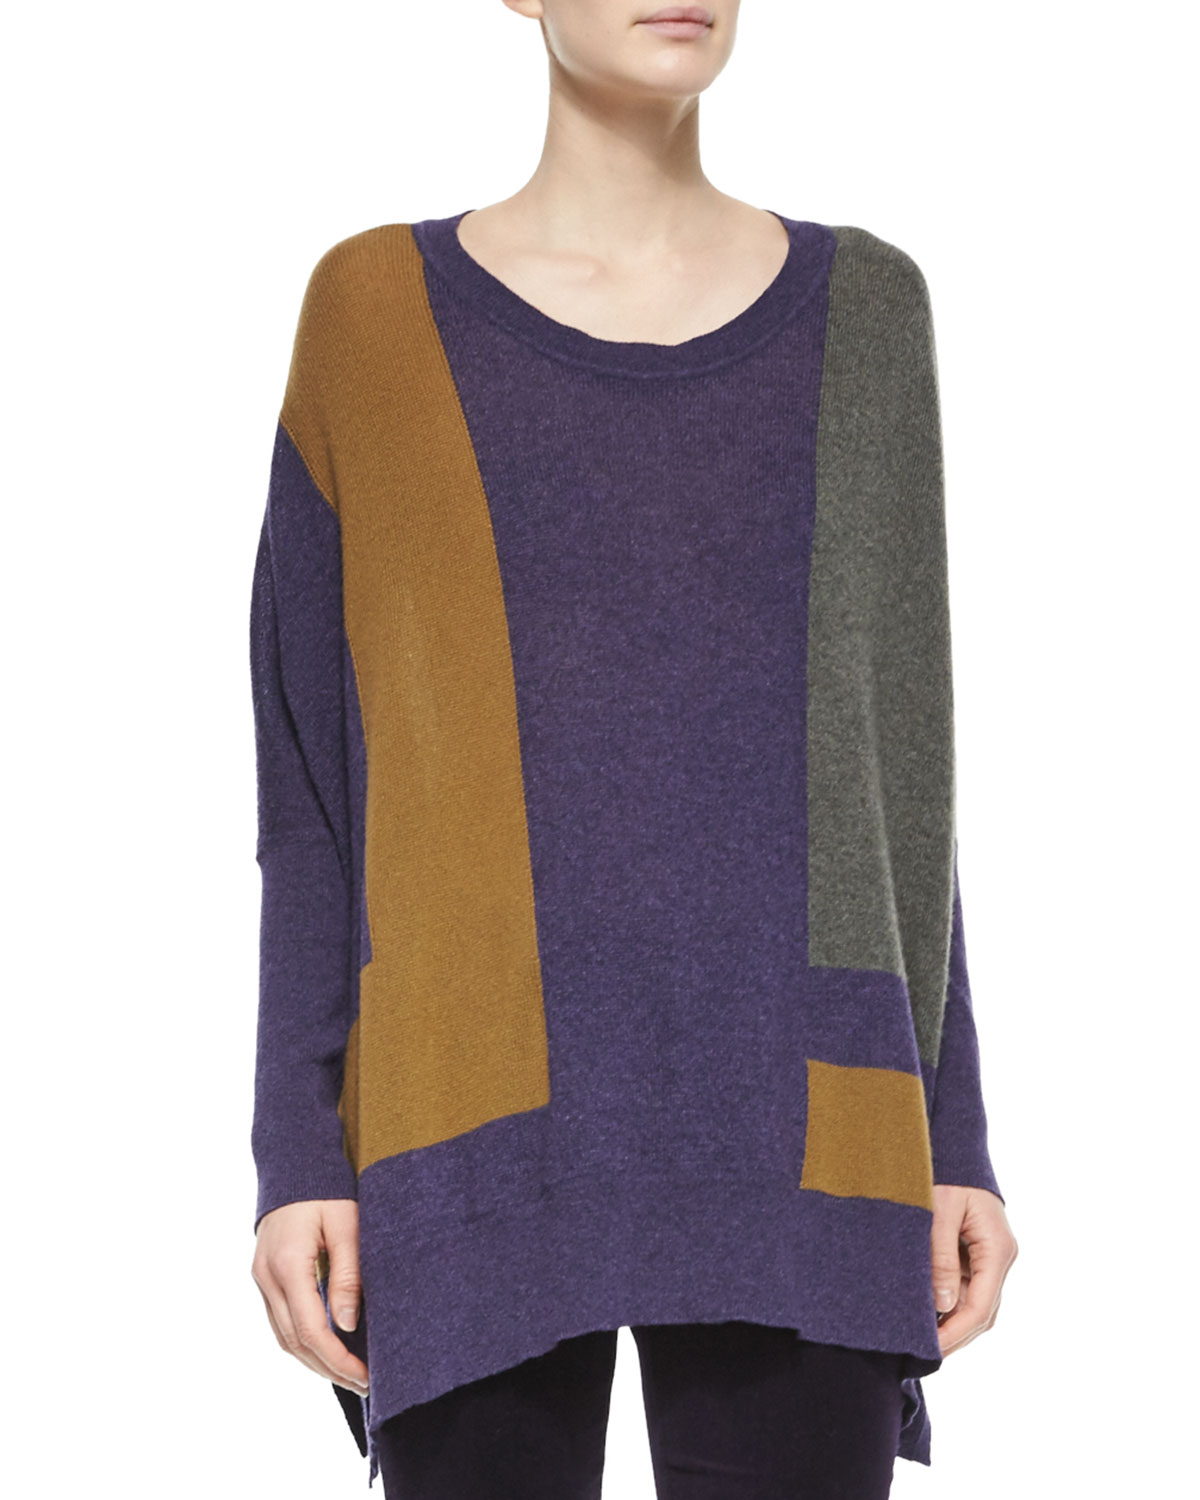 Knitting Pattern For Cashmere Poncho : Loro piana Cashmere Colorblock Knit Poncho Sweater Lyst